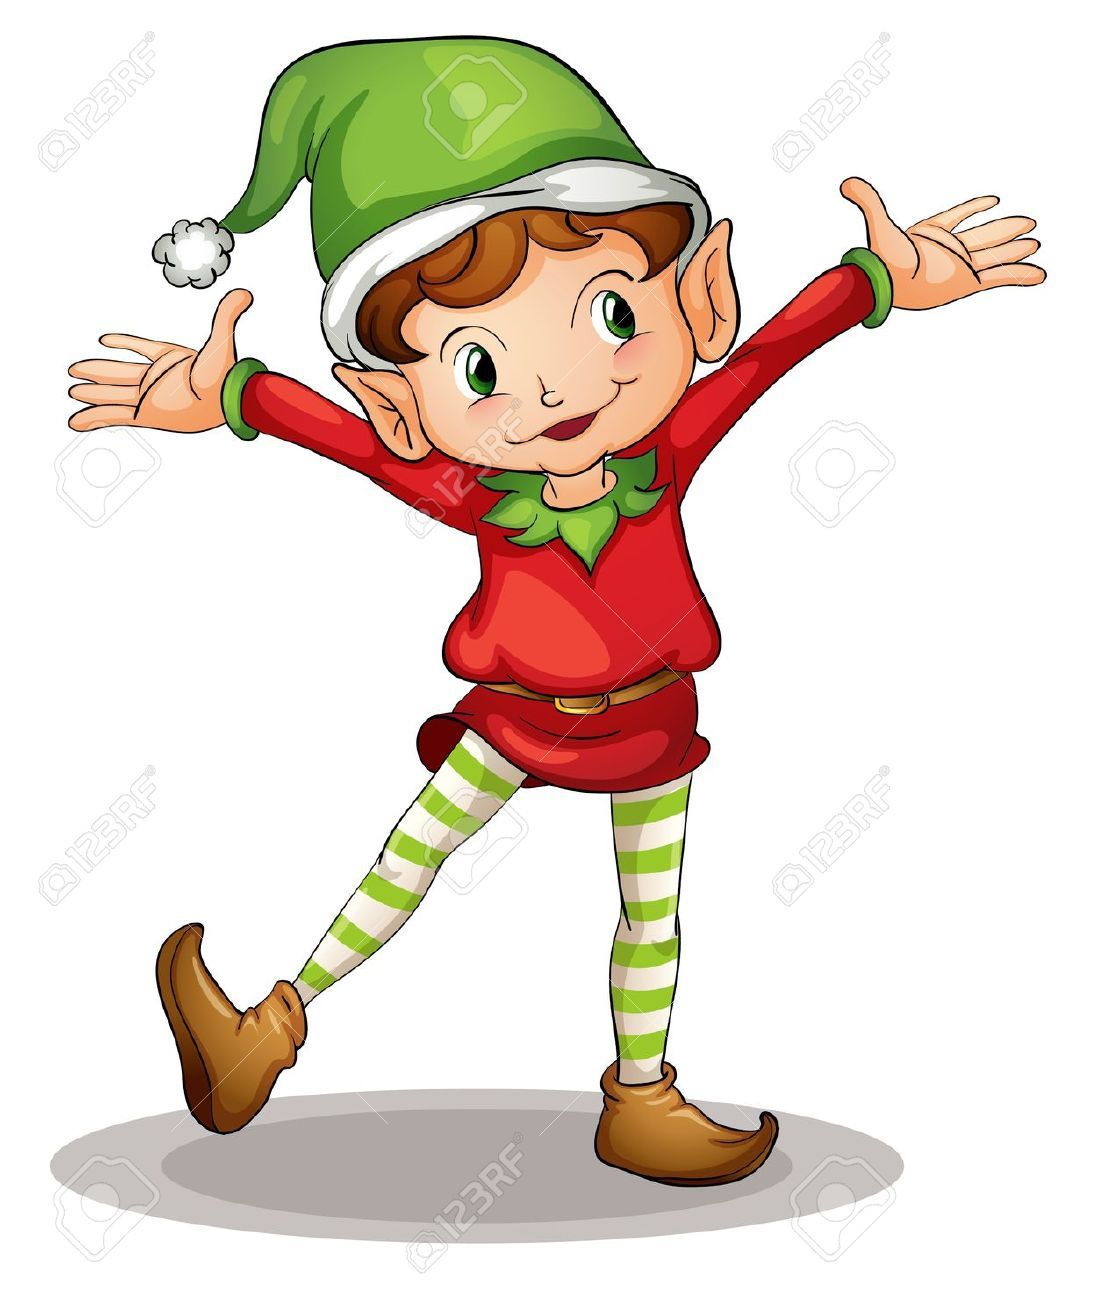 hight resolution of illustration of a christmas elf royalty free cliparts vectors and stock illustration pic 13930683